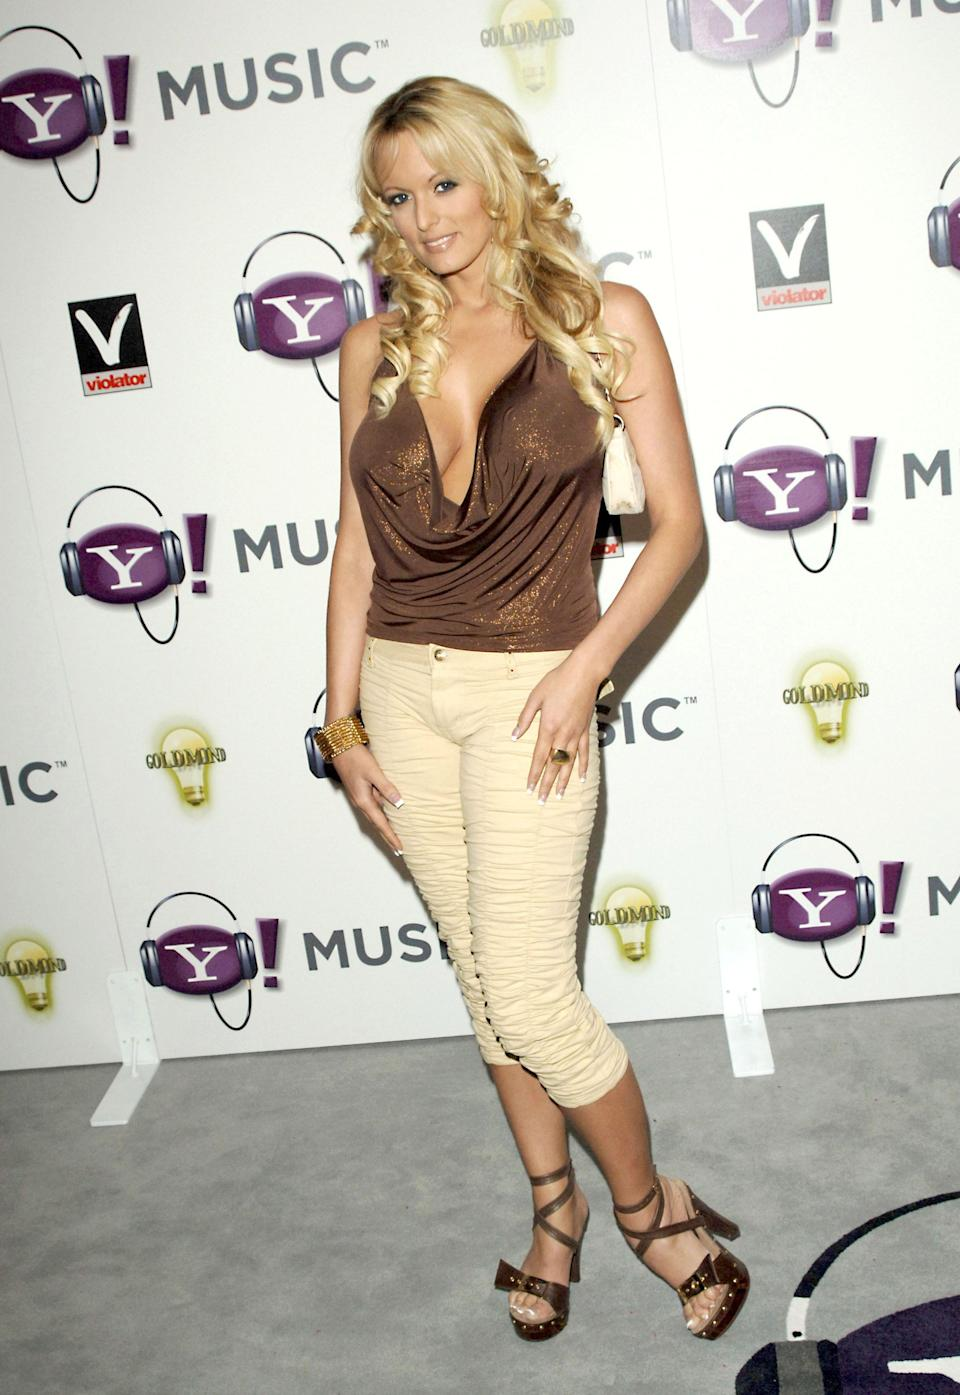 During Missy Elliot Hosts Yahoo! Music's Exclusive Grammy After Party at Mood in Hollywood.